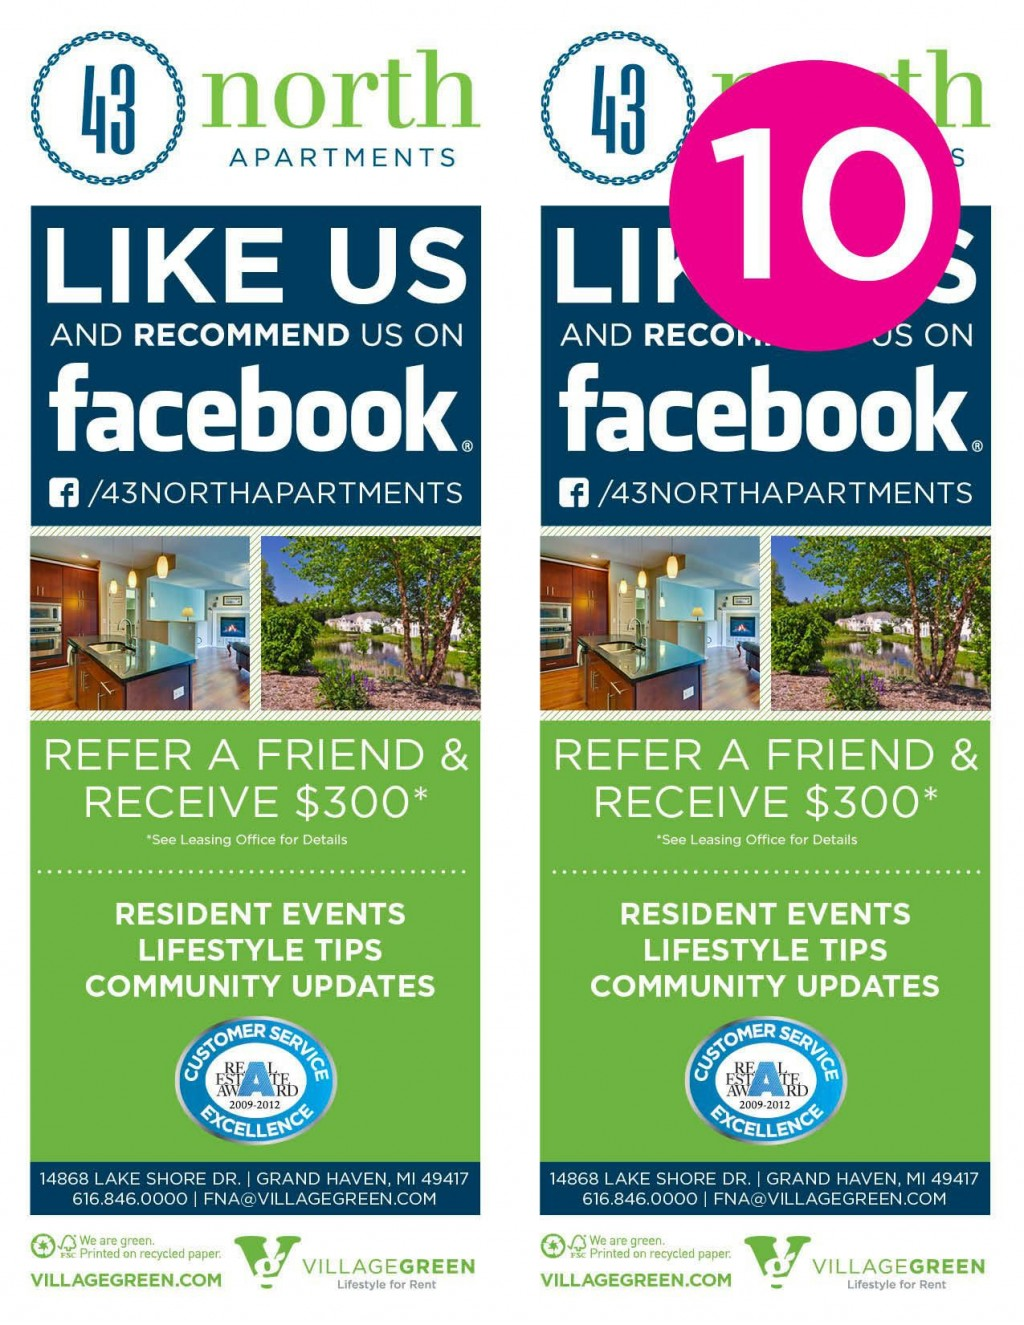 004 Amazing Like U On Facebook Template Highest Clarity  Free Flyer Email Find PosterLarge